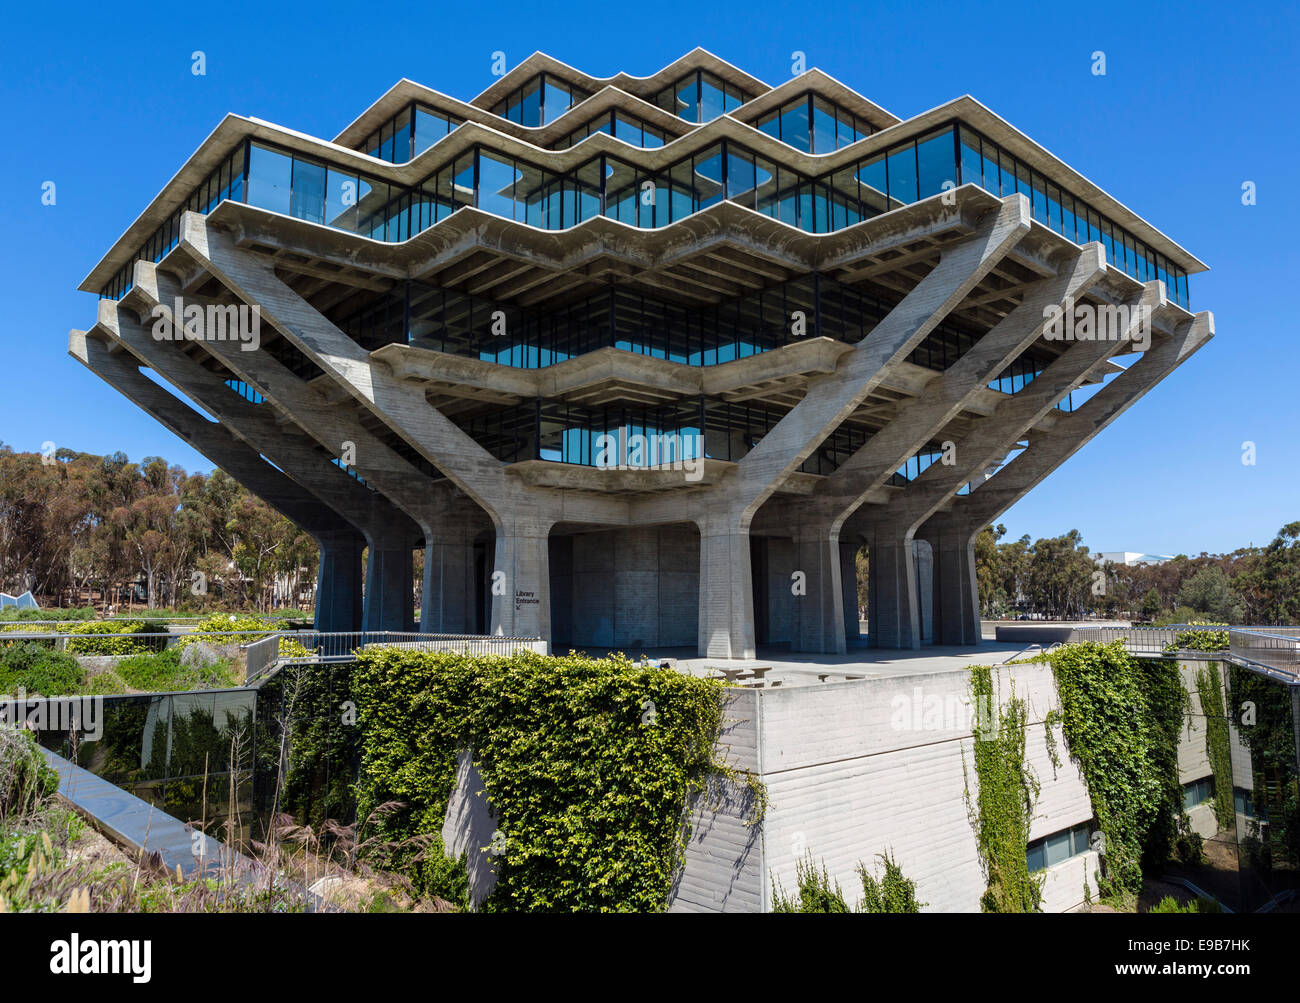 The William Pereira designed Geisel Library at the University of California San Diego, La Jolla, California, USA - Stock Image